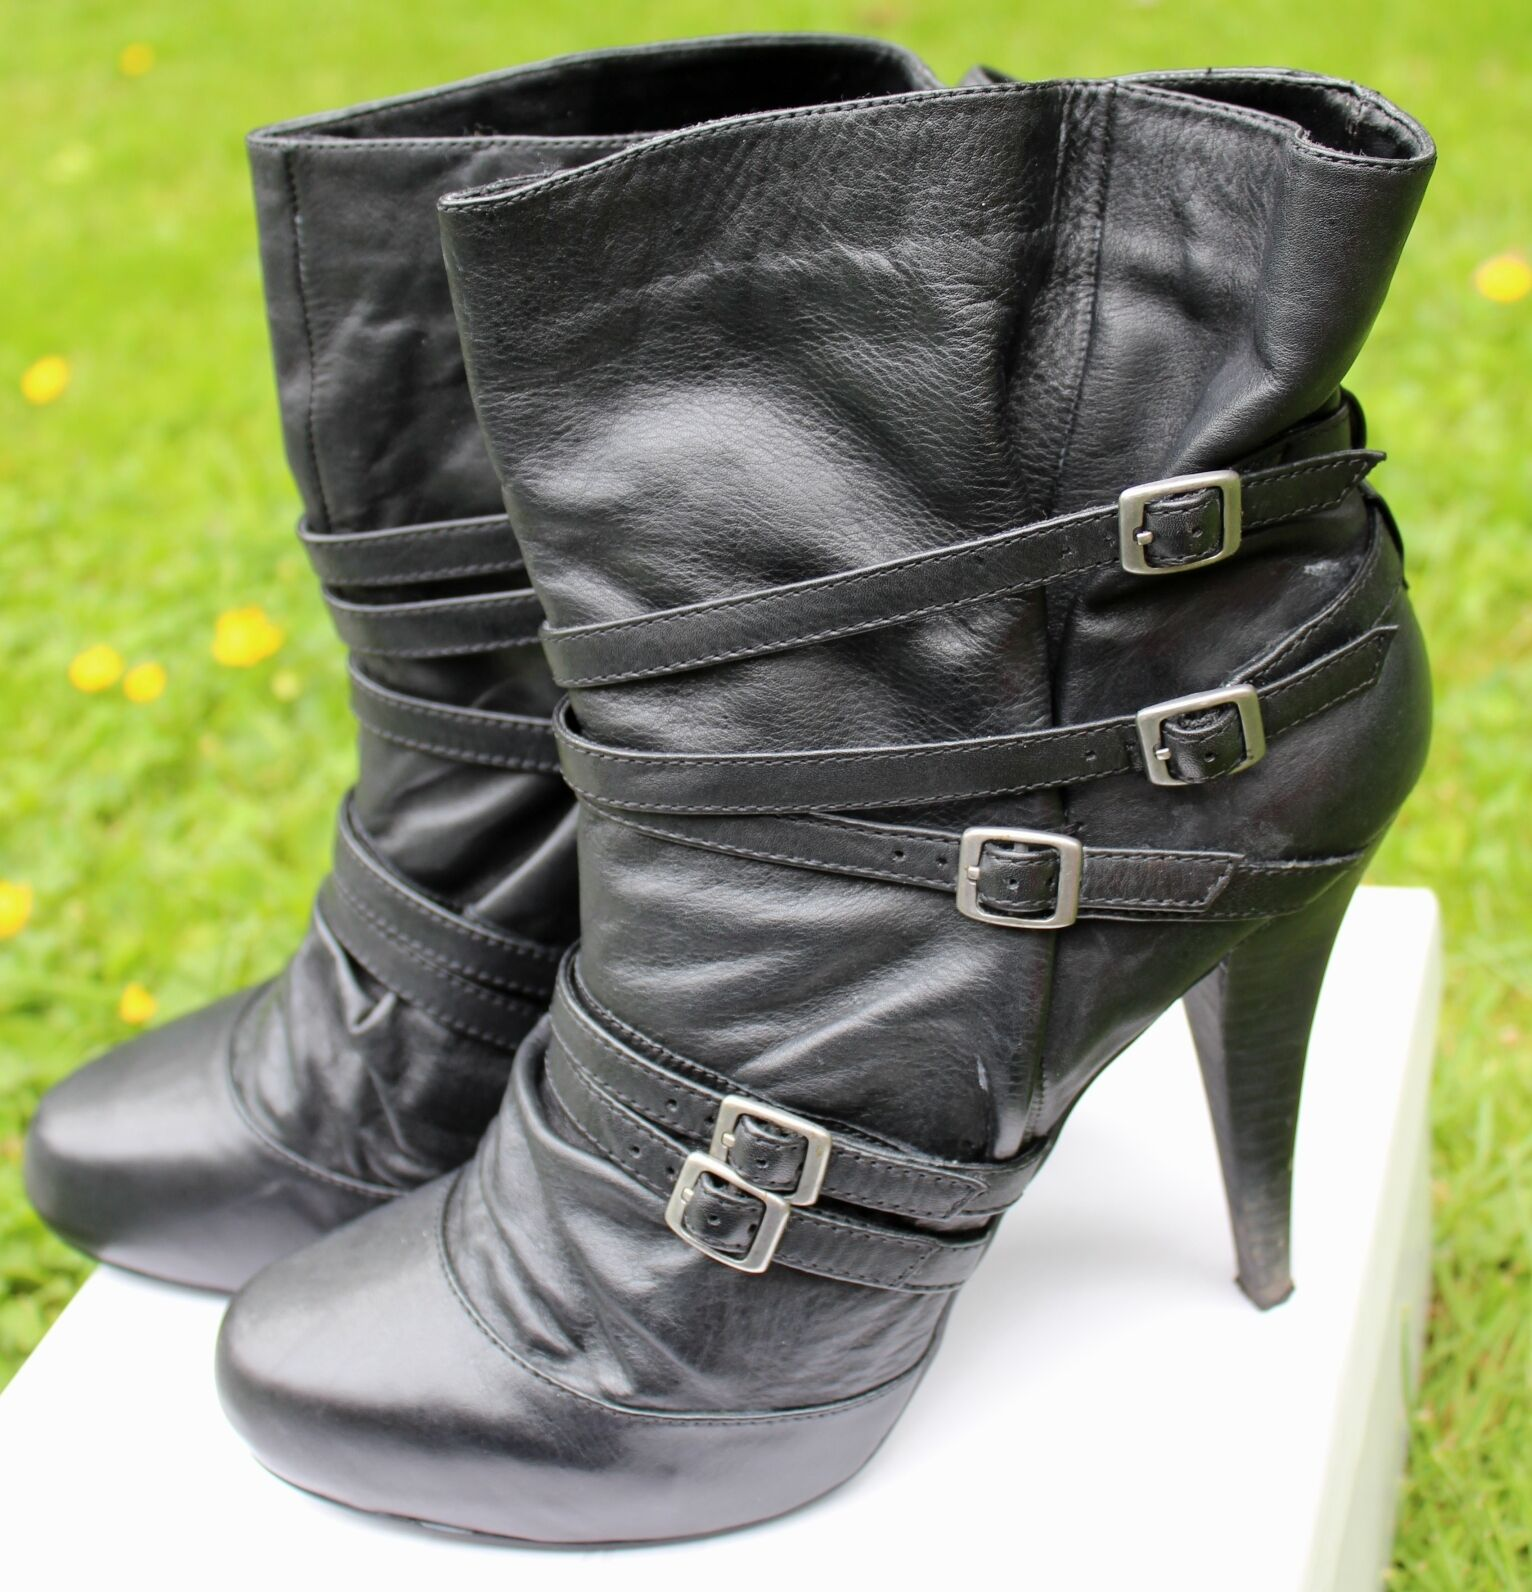 HIGH HEEL BLACK STRAPS BUCKLES  LEATHER ANKLE BOOTS 41 UK 7 Steam Punk Burlesque